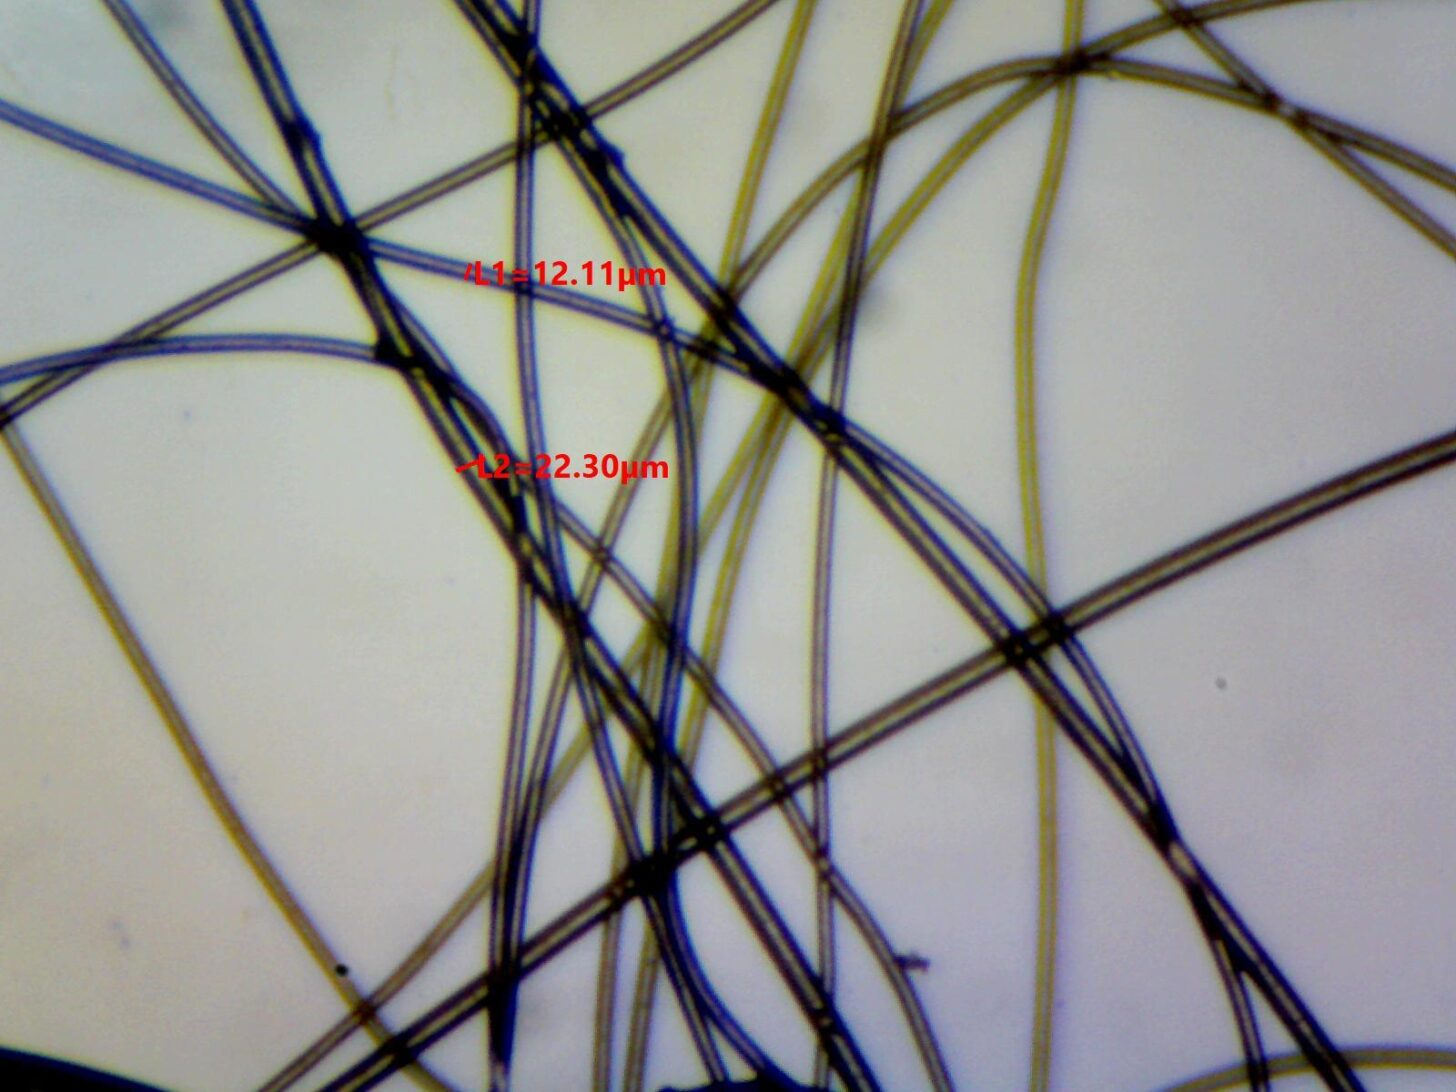 Primaloft Silver 3 oz Photomicrograph showing fiber diameter measurements of 12.11 and 22.30 microns.